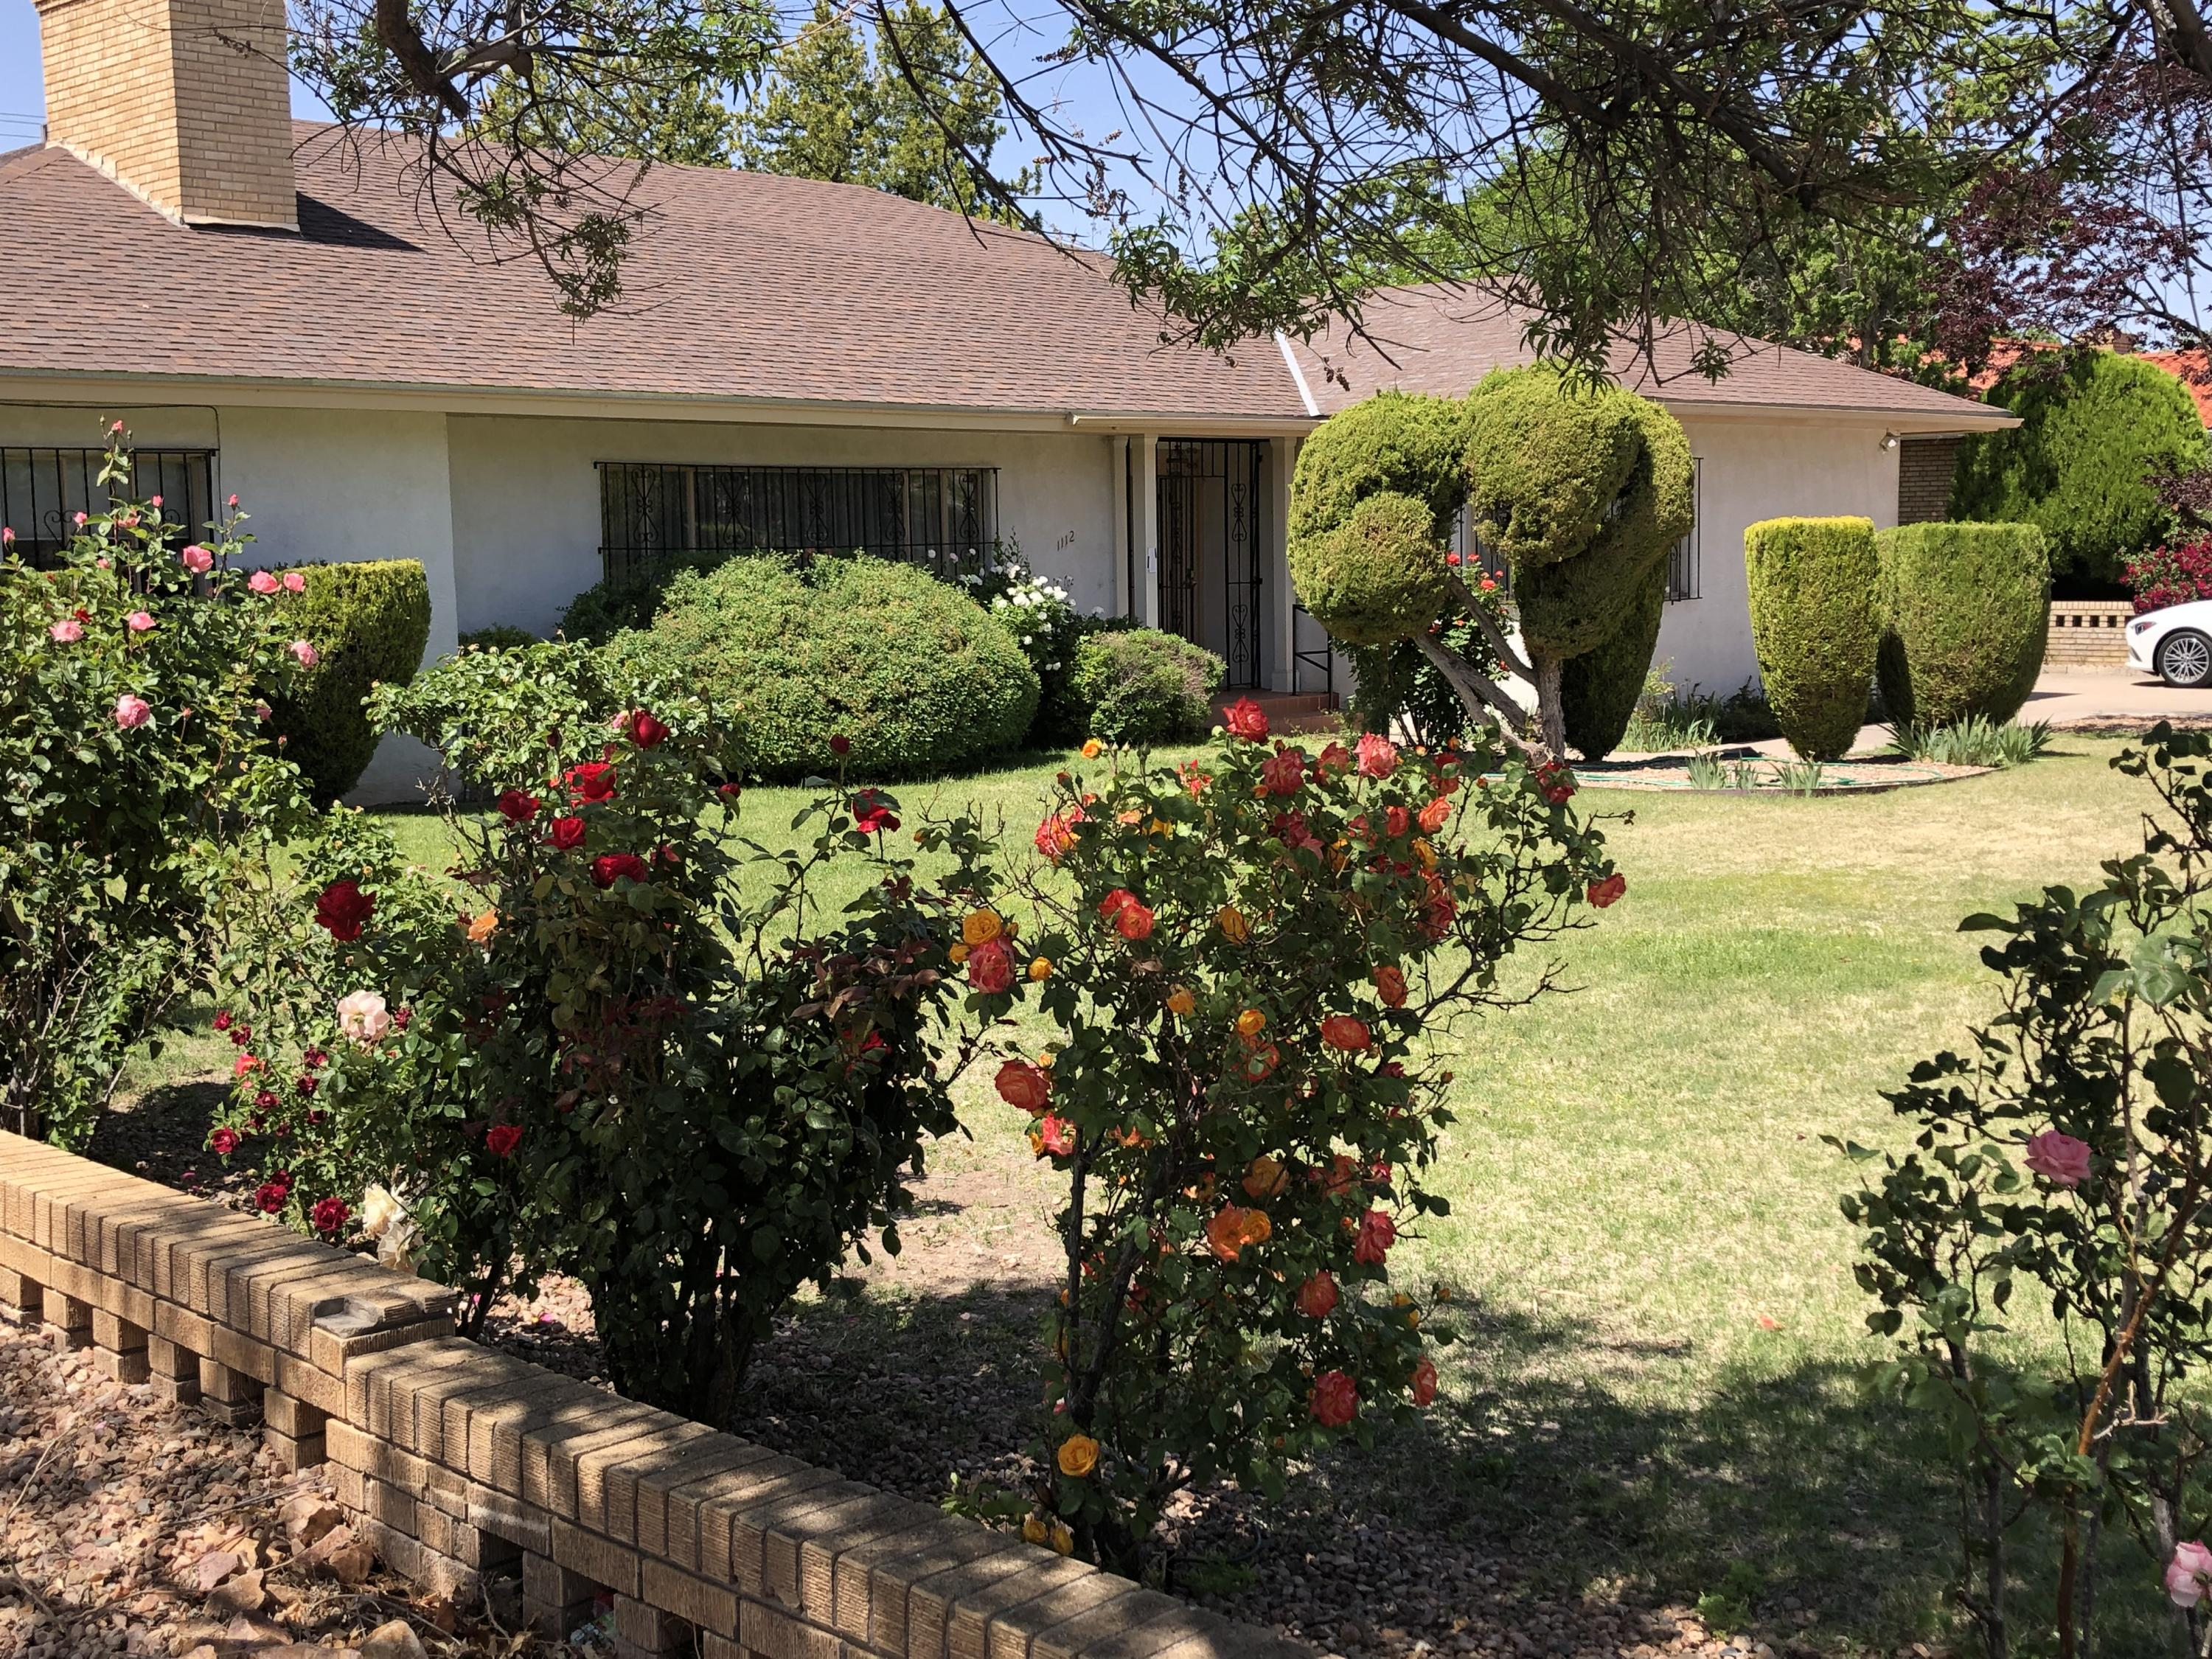 This charming University neighborhood offers the beauty of mid- century architecture with a great location.  Built in 1953, this custom home features many of the original amenities including a 10' coved LR ceiling, plaster & lath walls, glass pocket doors  separating the formal living and formal dining room.  There's even a swivel  built-in bar in the dining room. The hall and master baths reflect the 1950s feel with the original tile and flooring, shower & bath surrounds.The Master Suite is separated from the other 4 bedrooms and features a full, mirrored dressing area, walk-in closet system designed by California Closets & the original bathroom tile work. and many of the 1950s light fixtures.  The other amply sized BRs are located on the opposite side of the house.,(SEE MORE REMARKS)